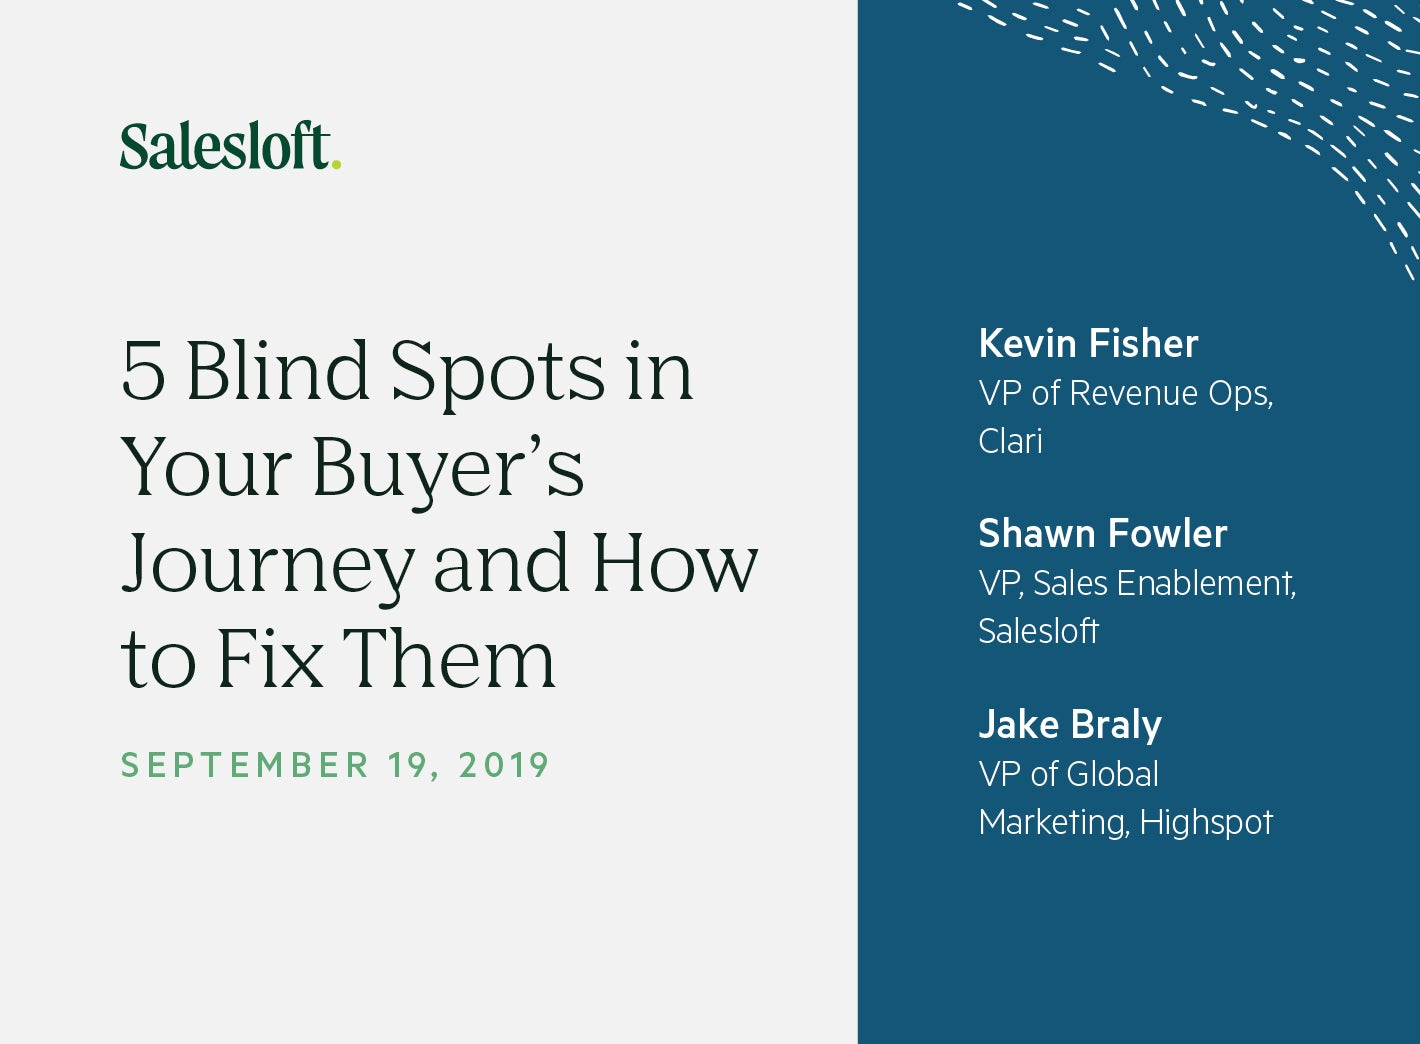 5 Blind Spots in Your Buyer's Journey and How to Fix Them